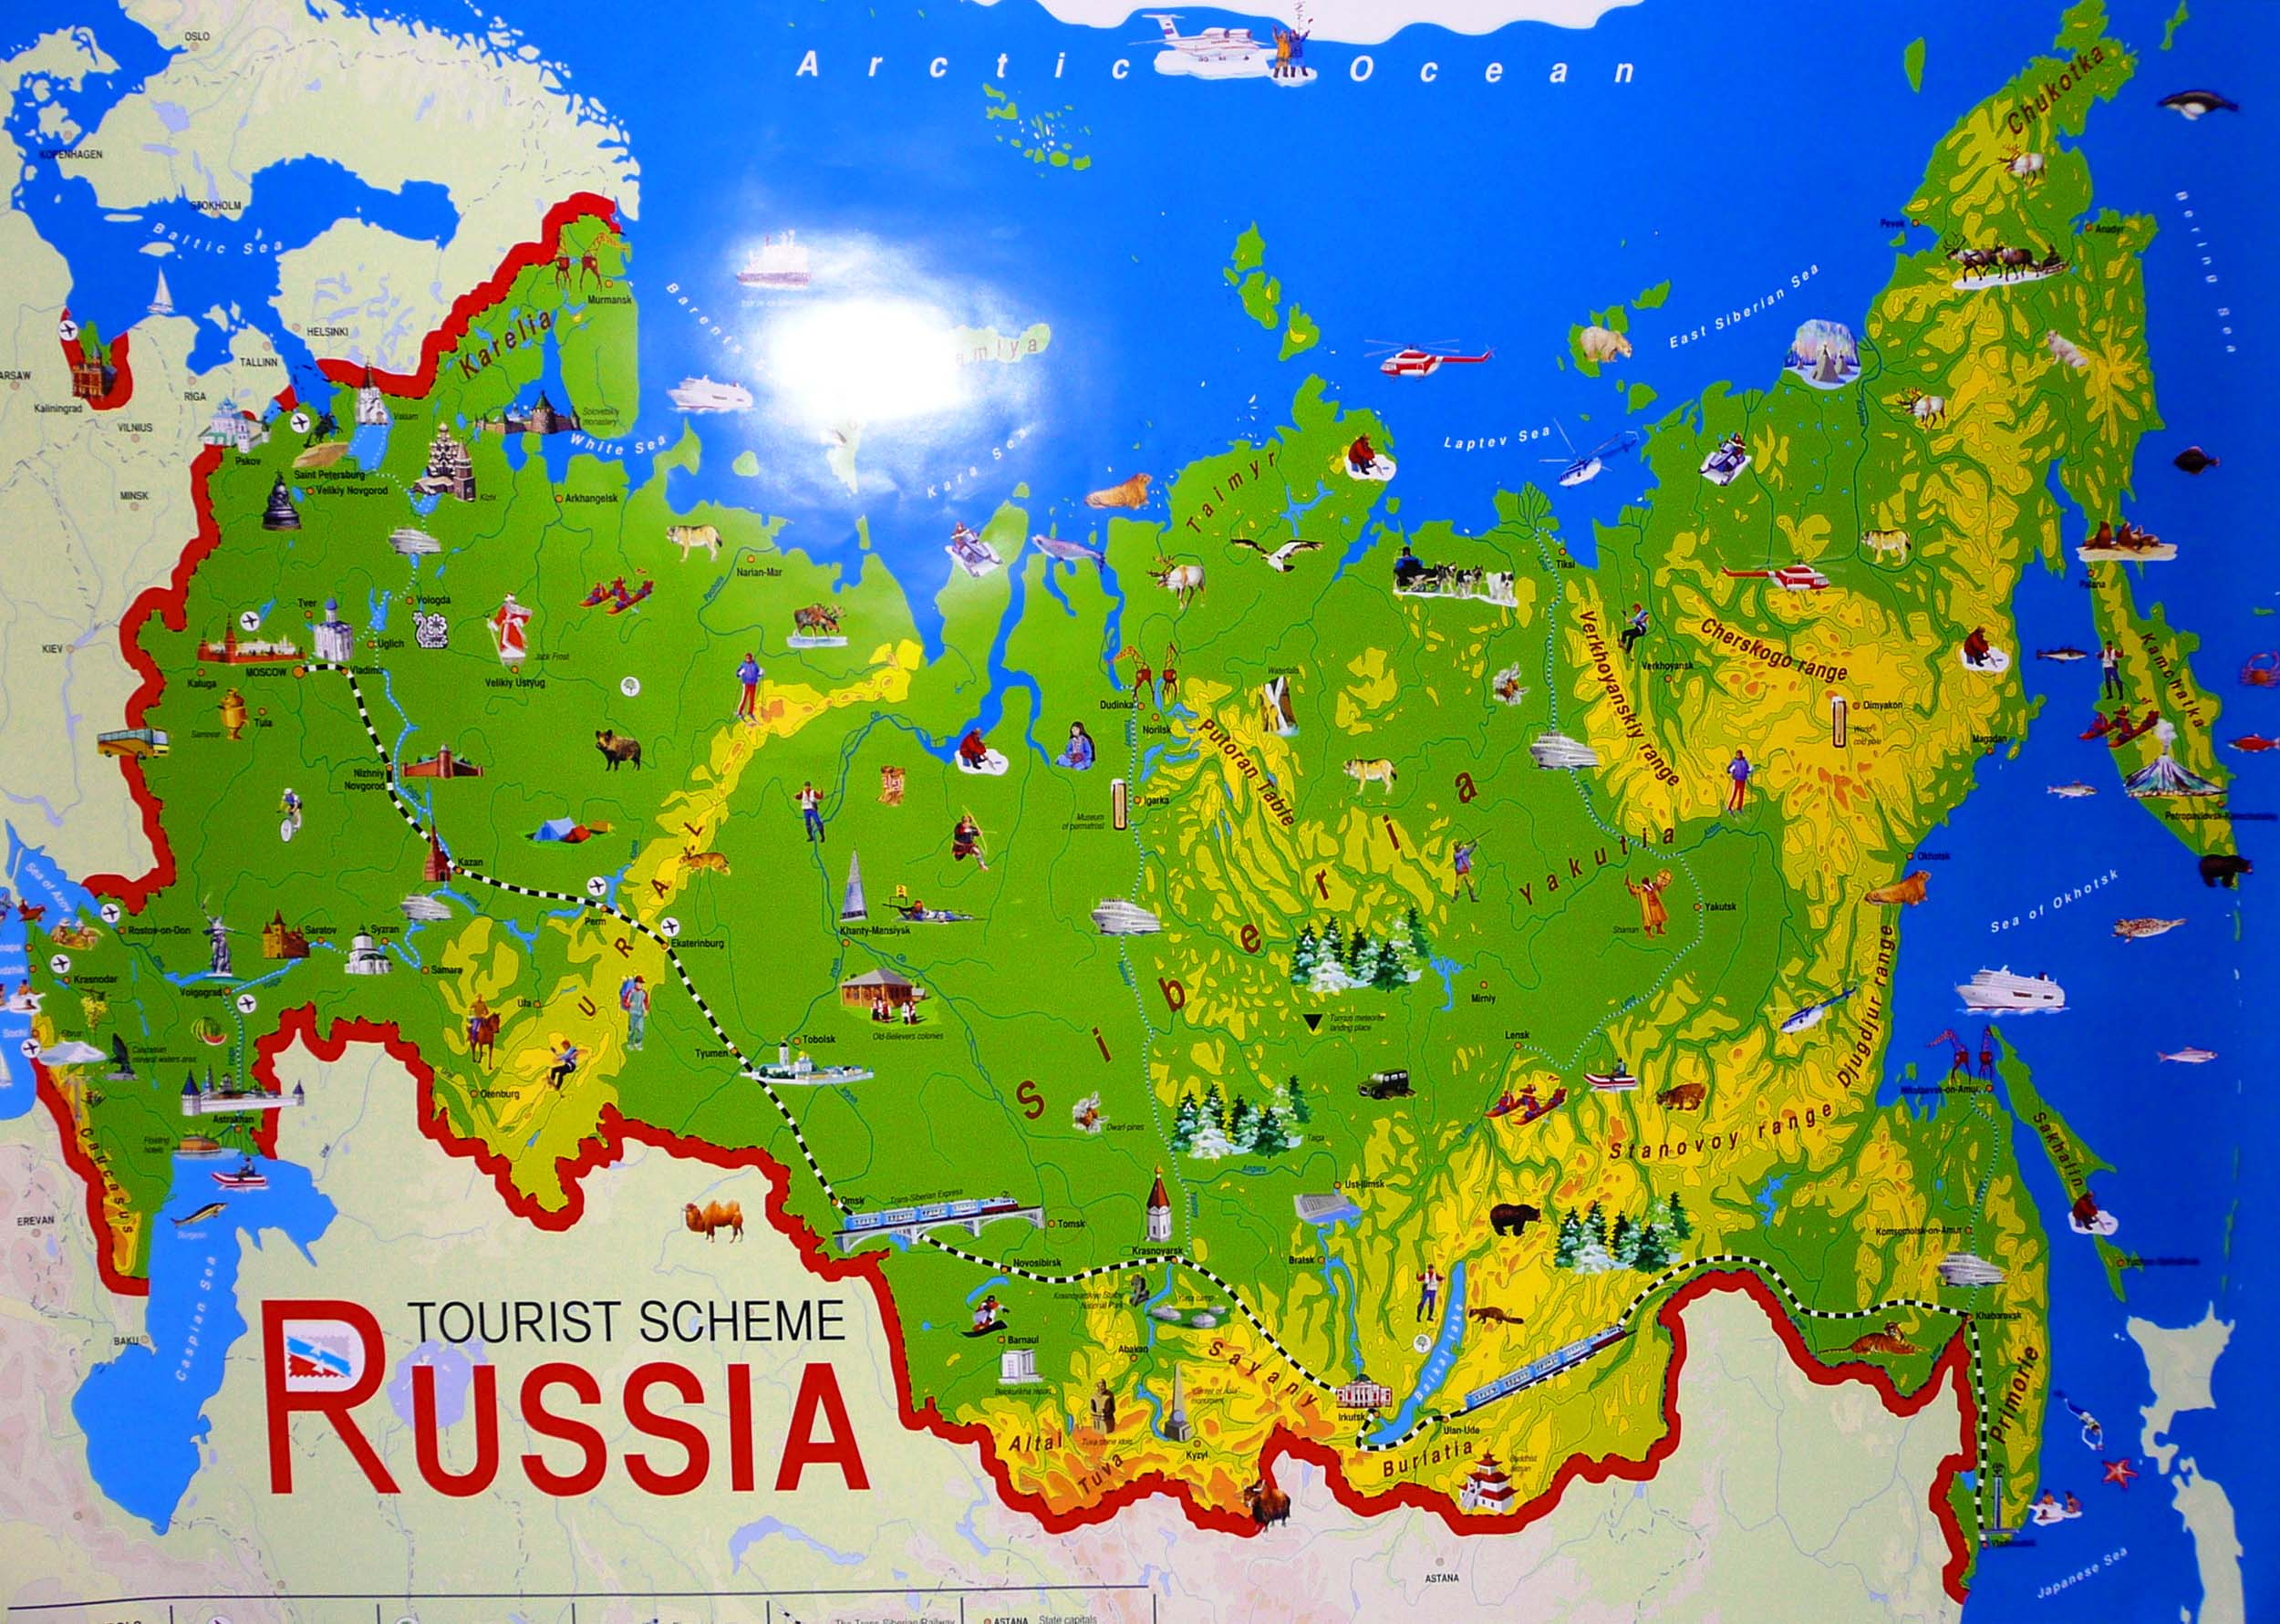 The Russian Federation Traveling Matters to us